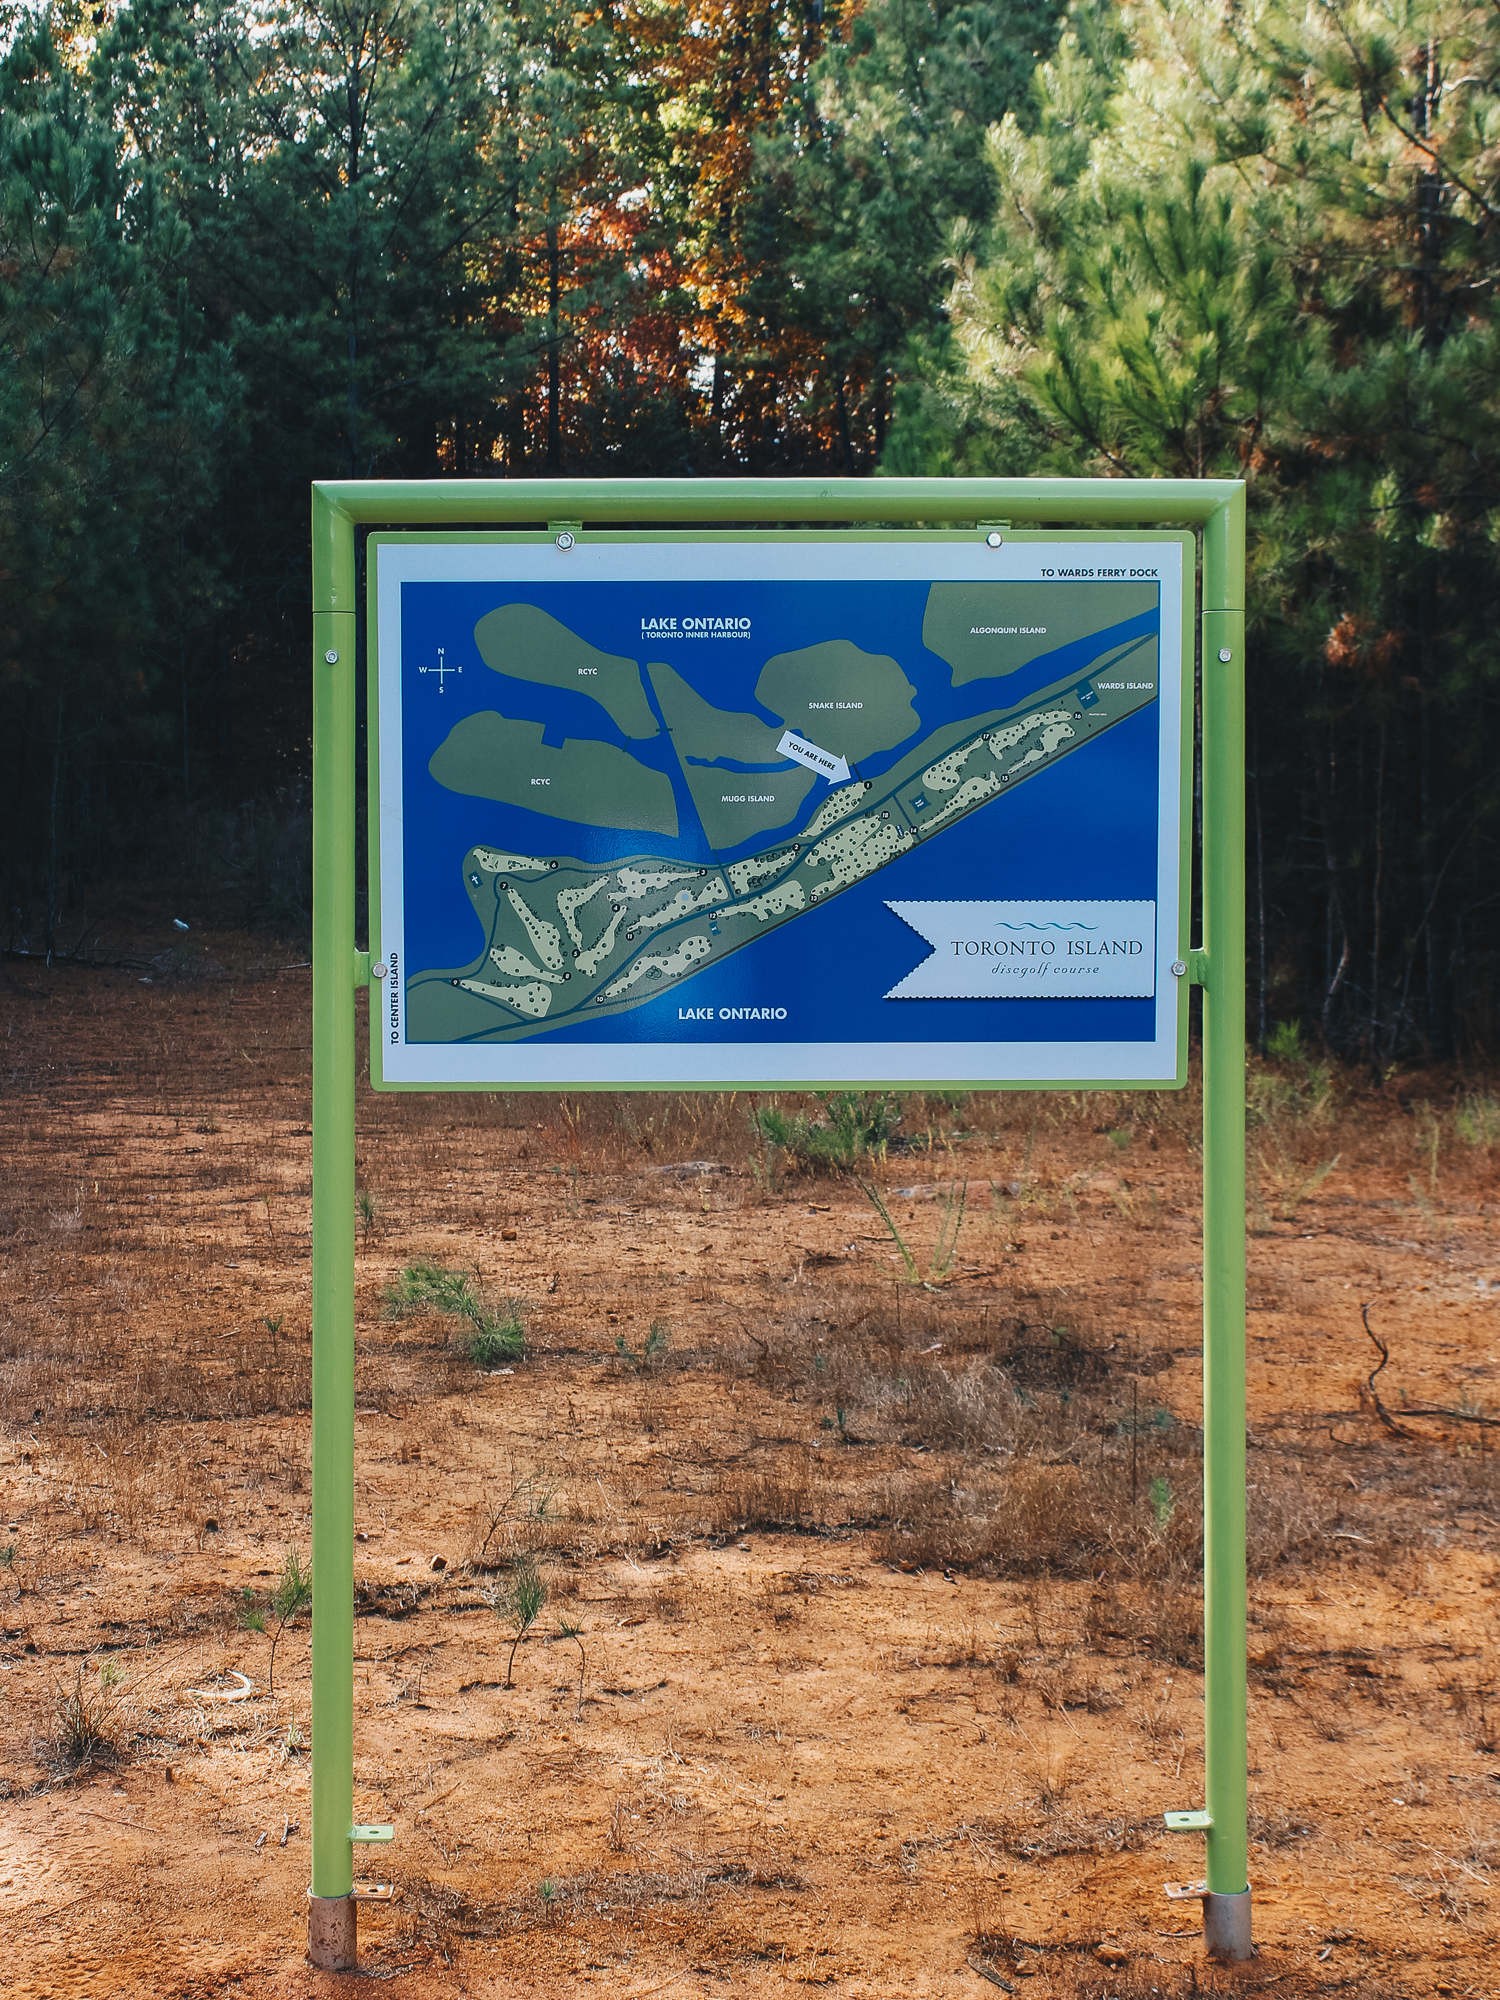 COURSE SIGNS